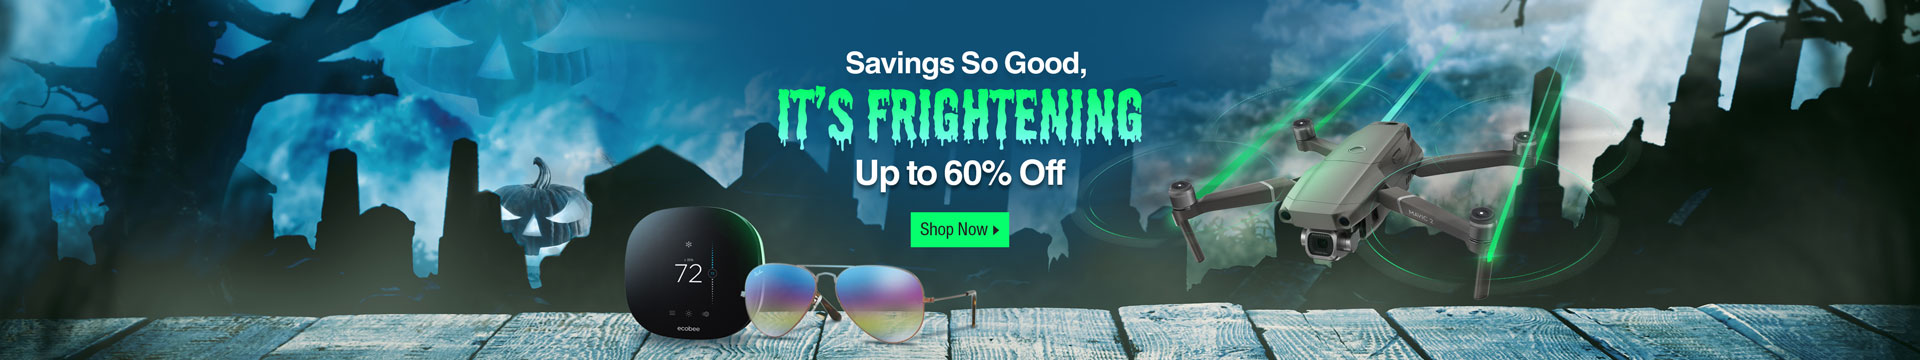 Savings So Good, It's Frightening, Up to 60% off